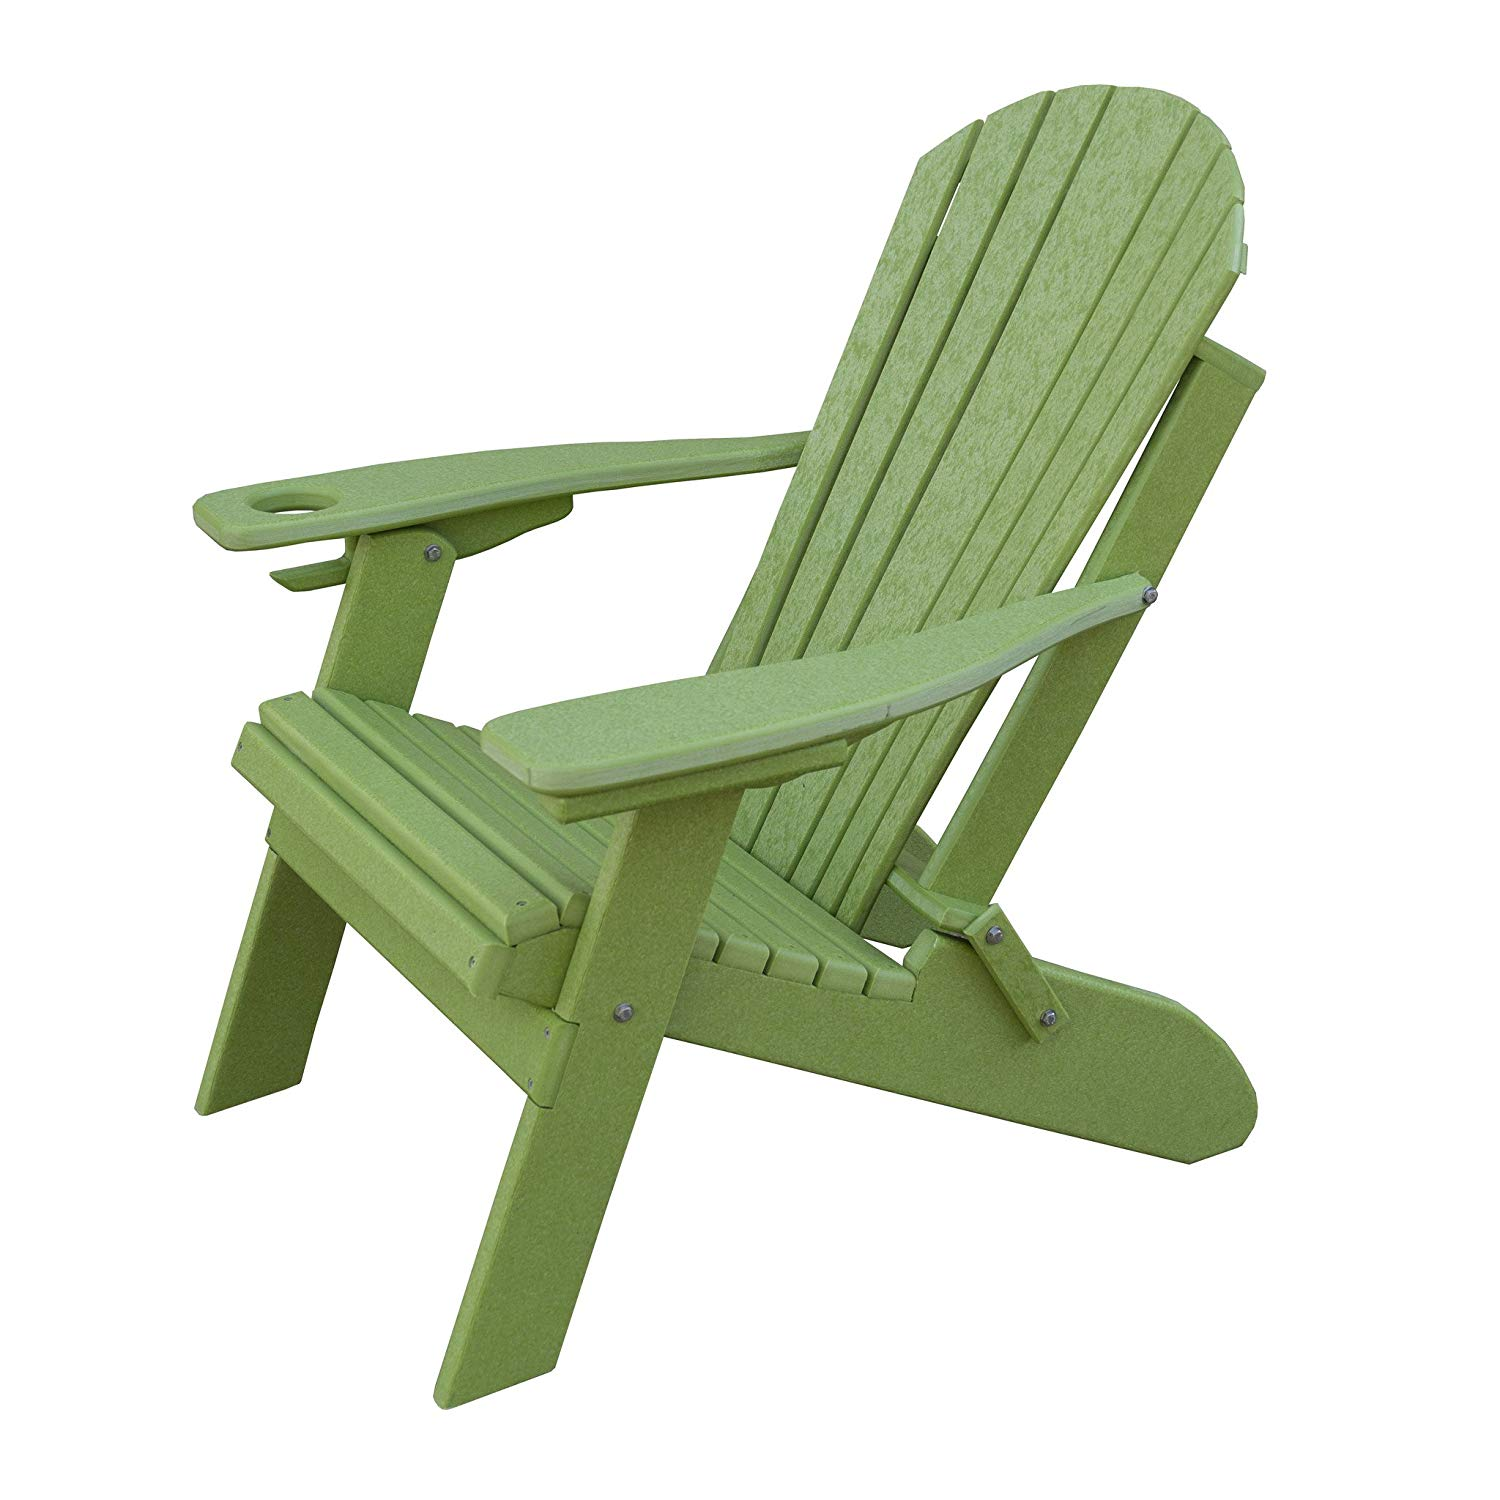 Get Quotations Furniture Barn Usa Deluxe Premium Poly Lumber Folding Adirondack Chair W Cup Holder Smart